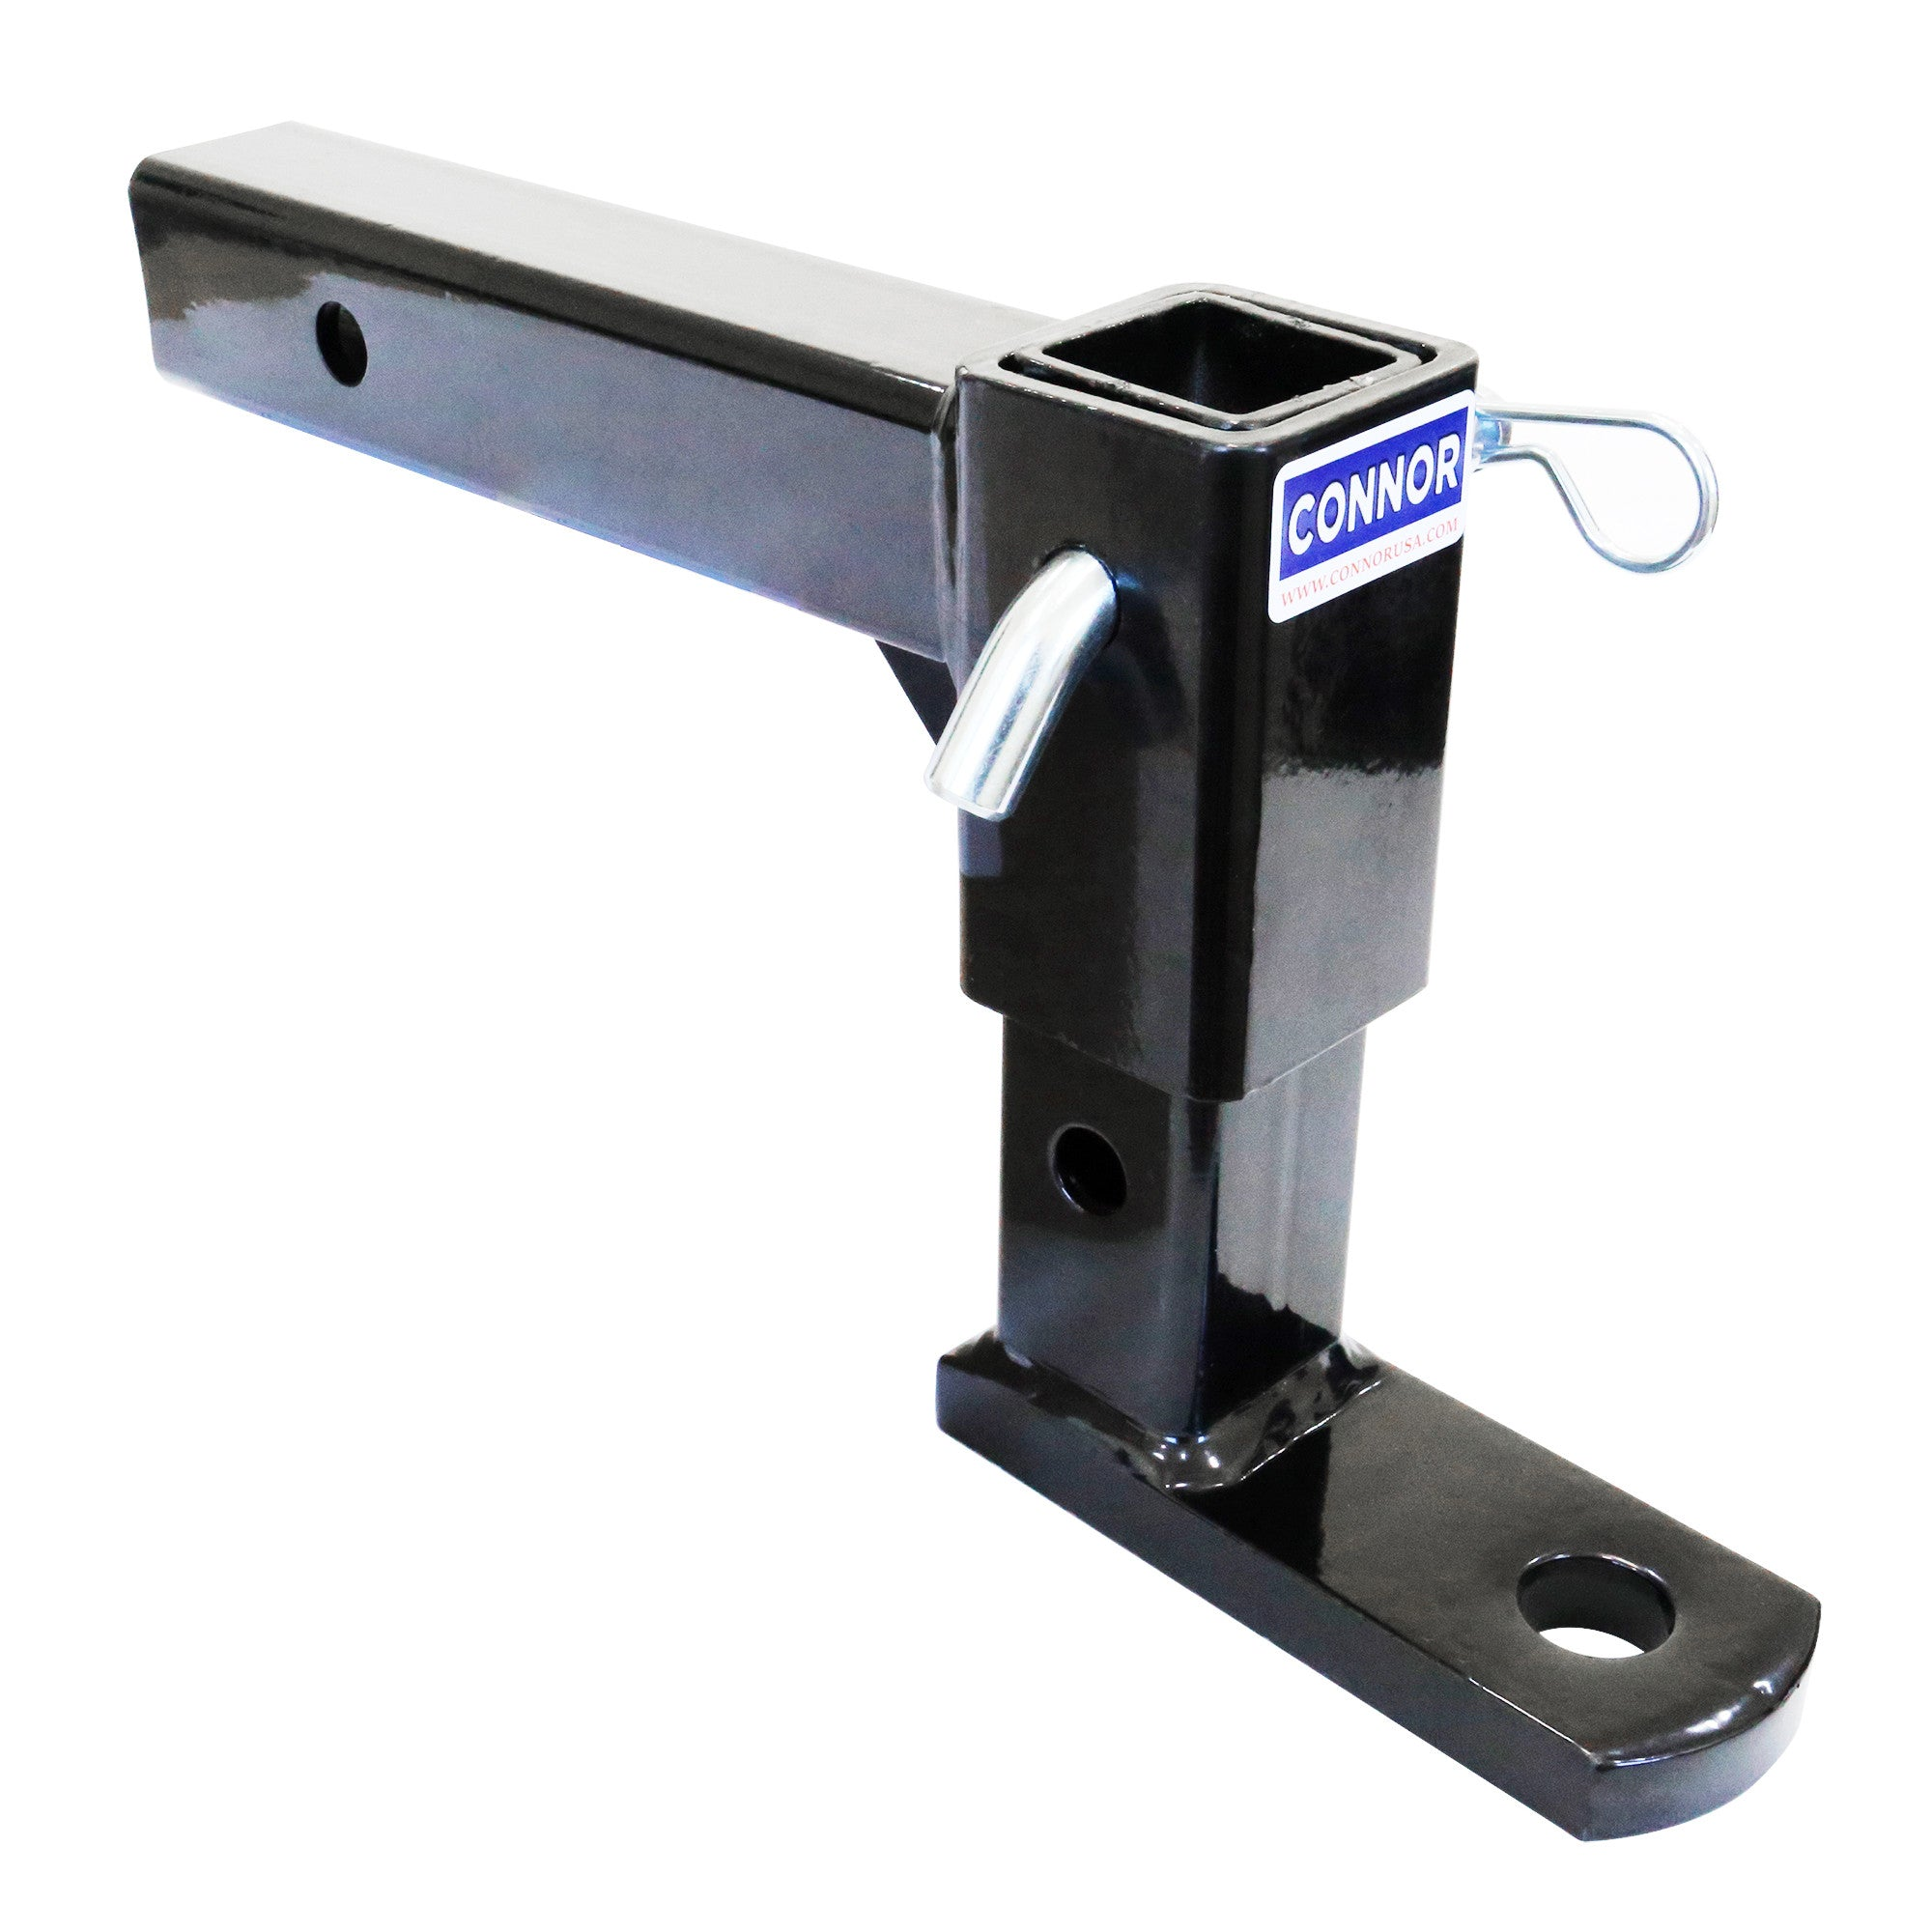 1625370 Trailer Hitch Extension Connor Hitch Extender GTW- 4000 lb. High 2 Dual Hitch Extension